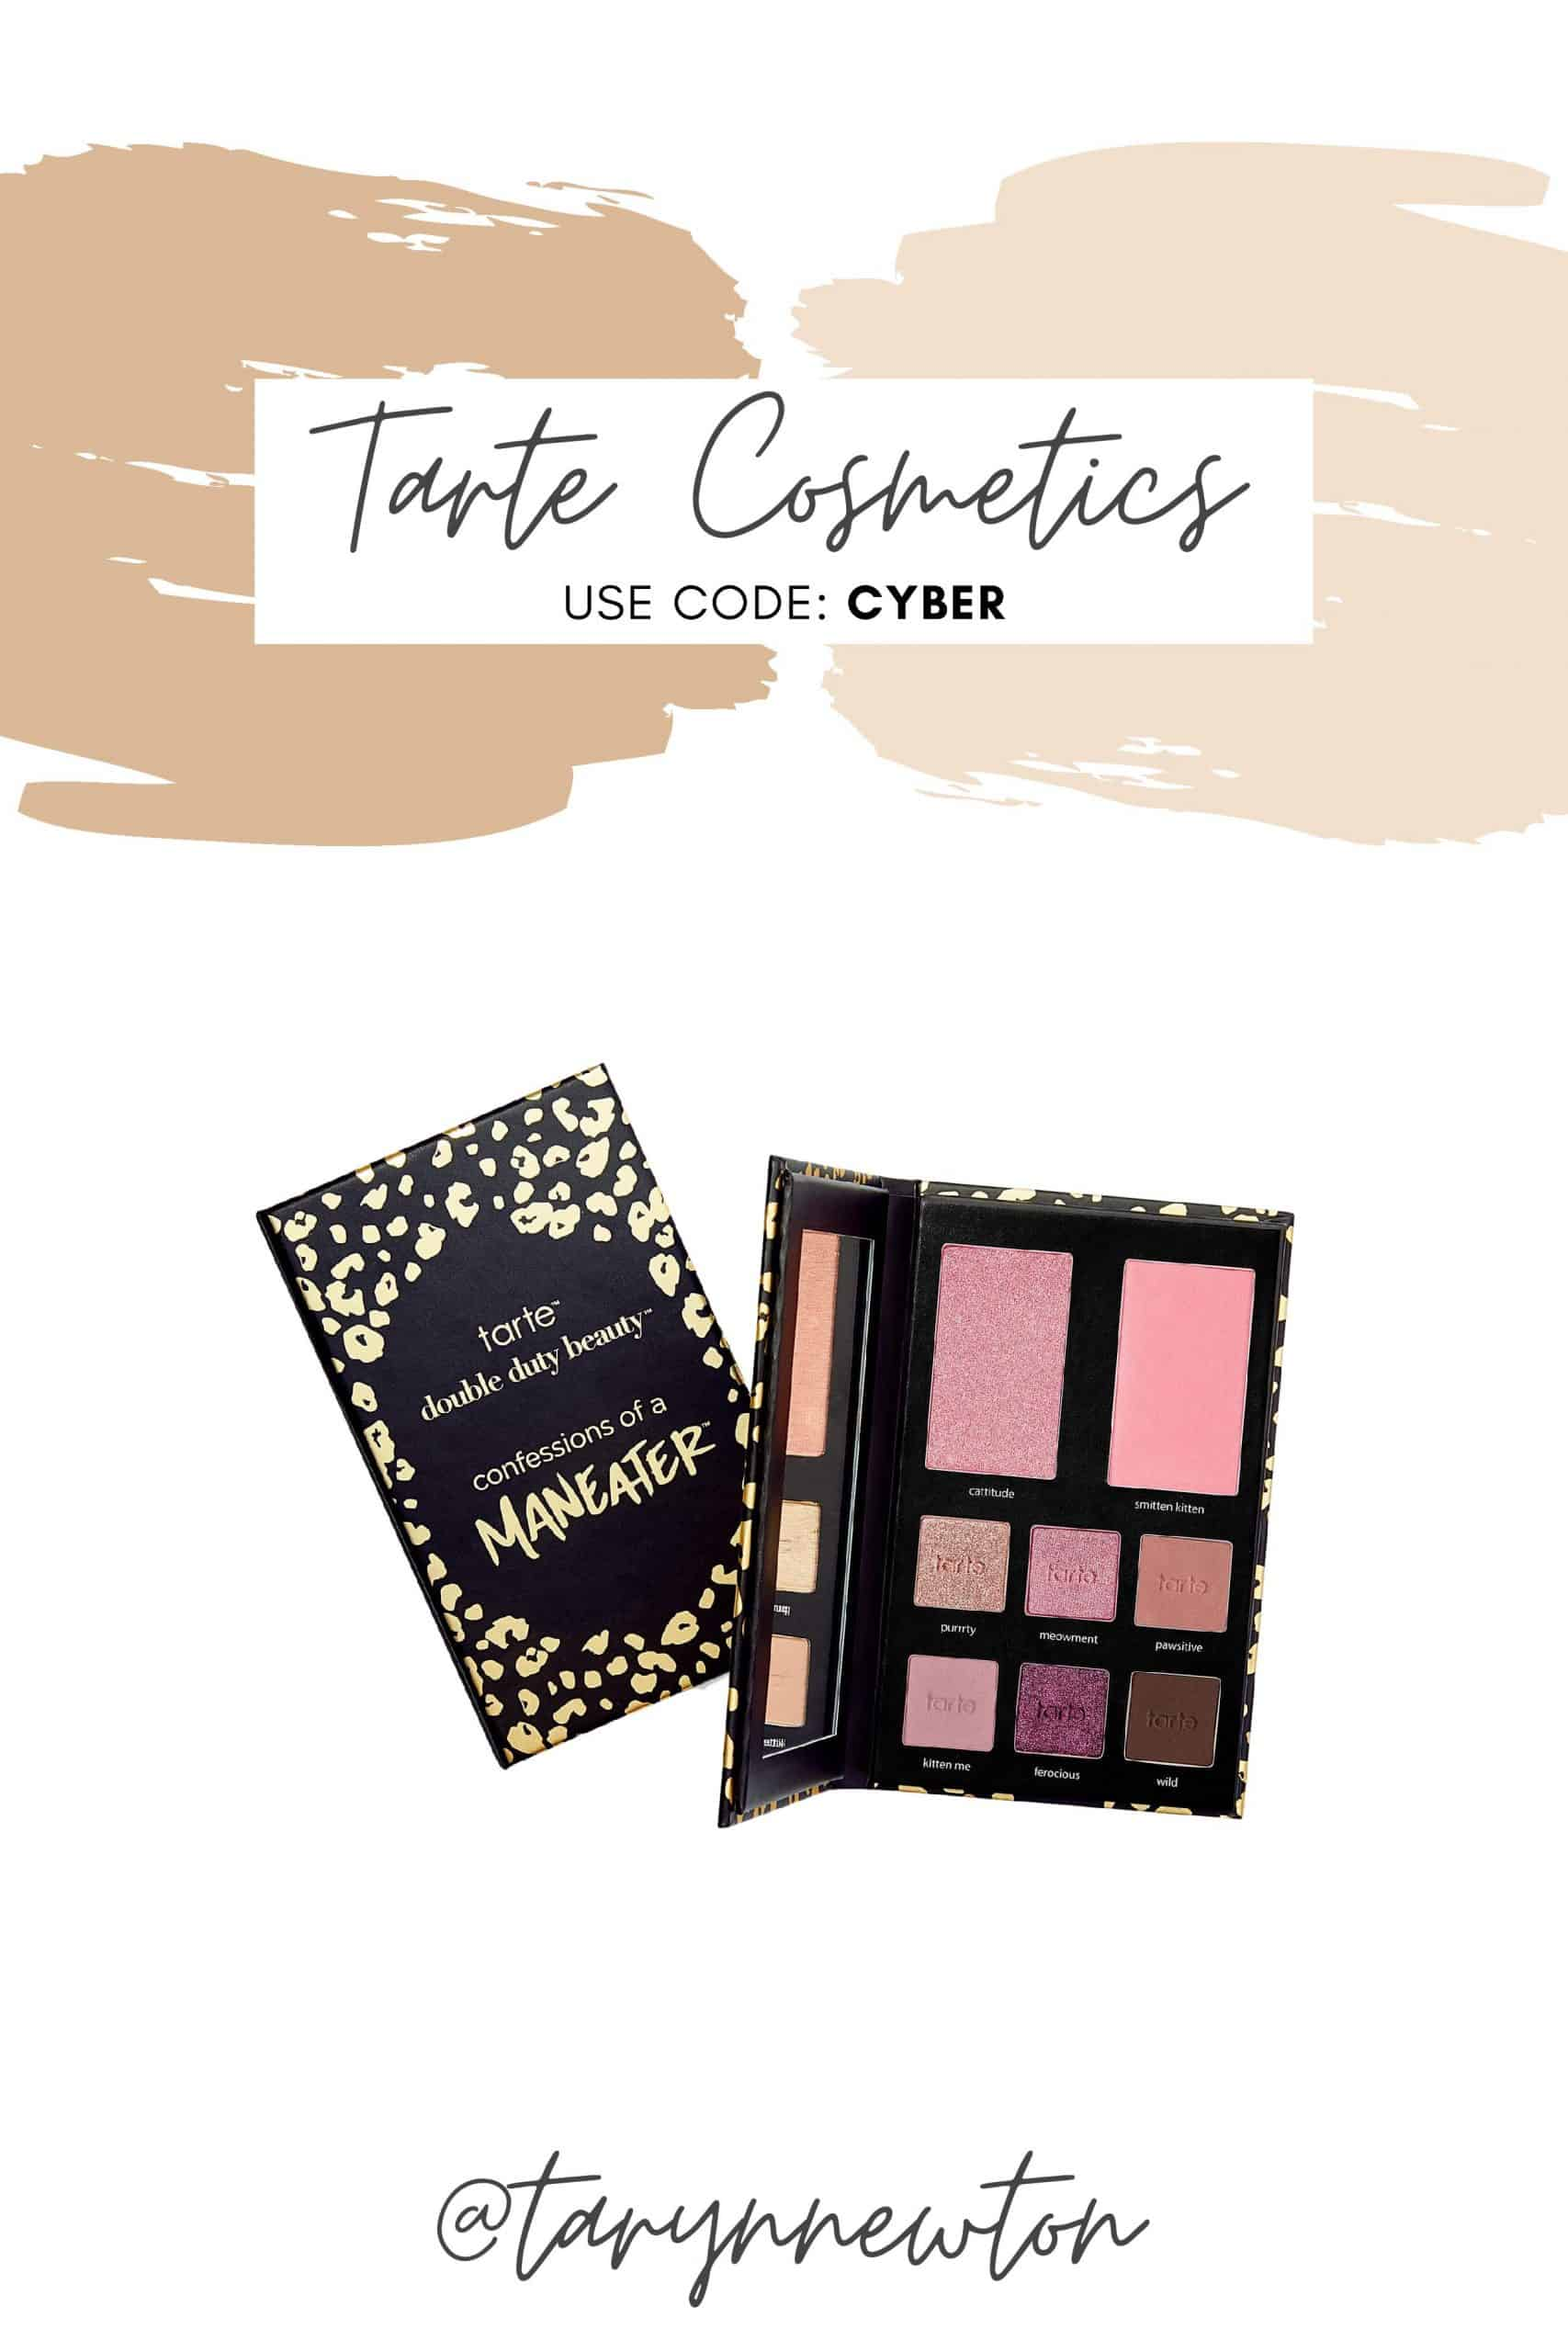 Black Friday Guide by popular Dallas life and style blog, Glamorous Versatility: Pinterest image of Tarte Cosmetics.